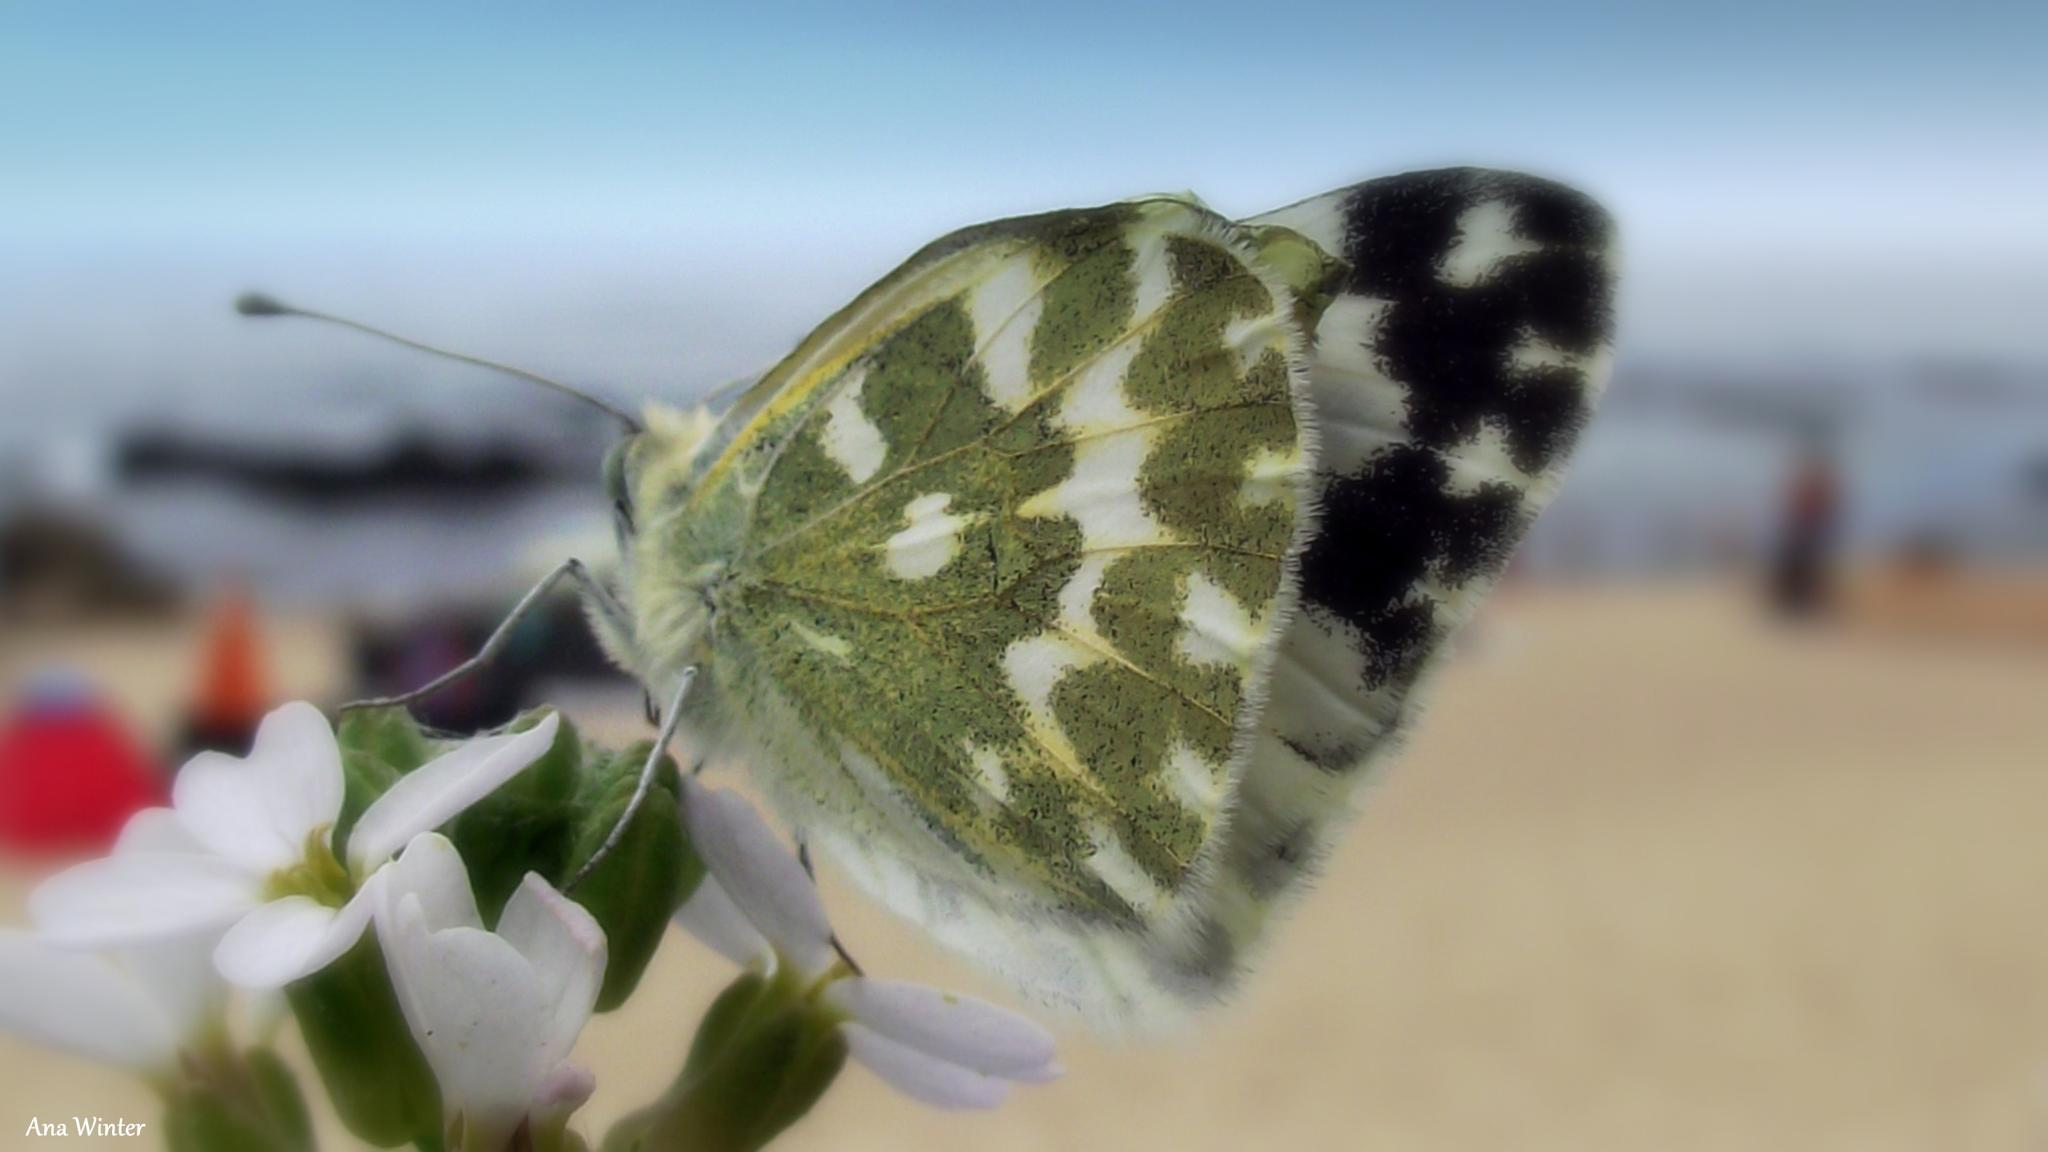 Little Mariposa at the beach by Ana Winter